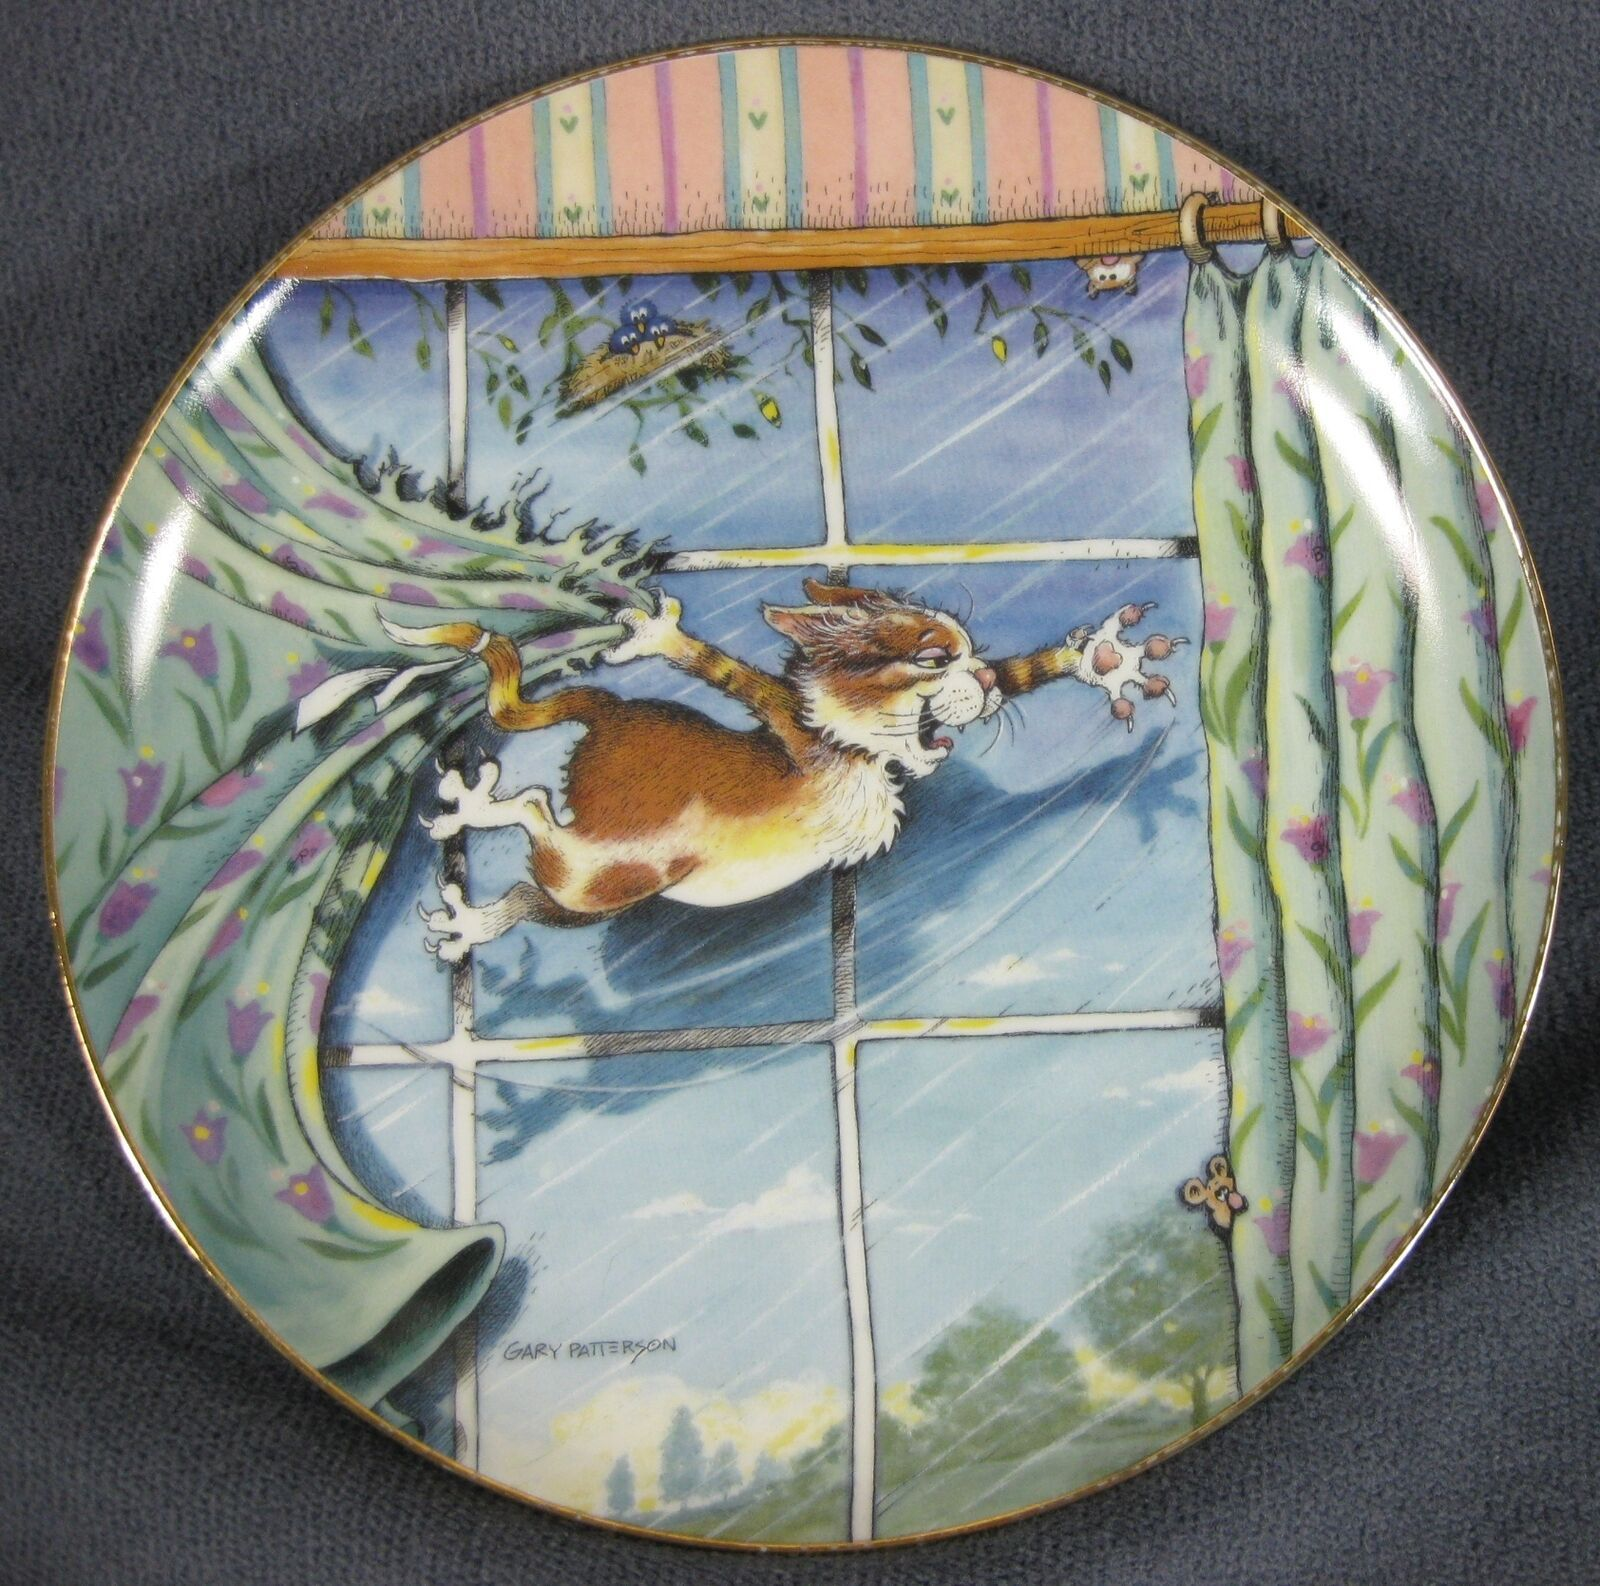 Primary image for Curtain Call Collector Plate Gary Patterson Comical Cats Danbury Mint